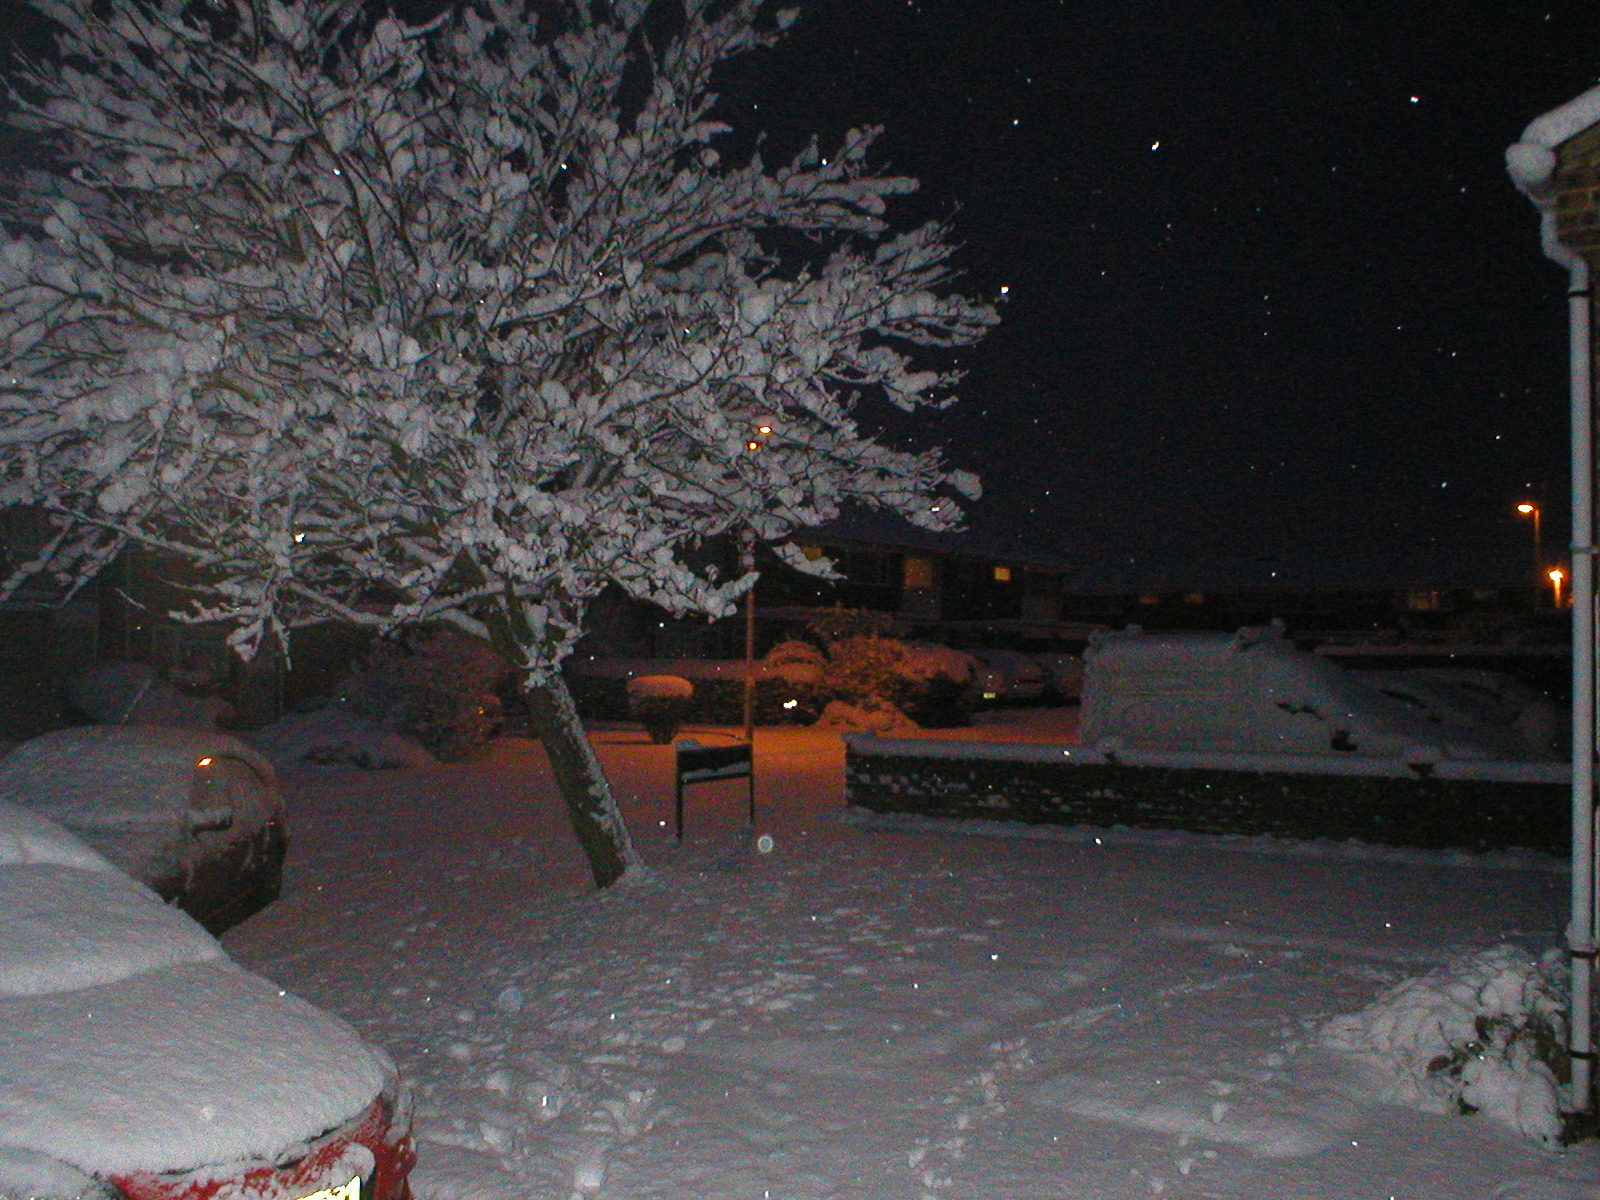 The first coating of snow in Abingdon, Oxfordshire.